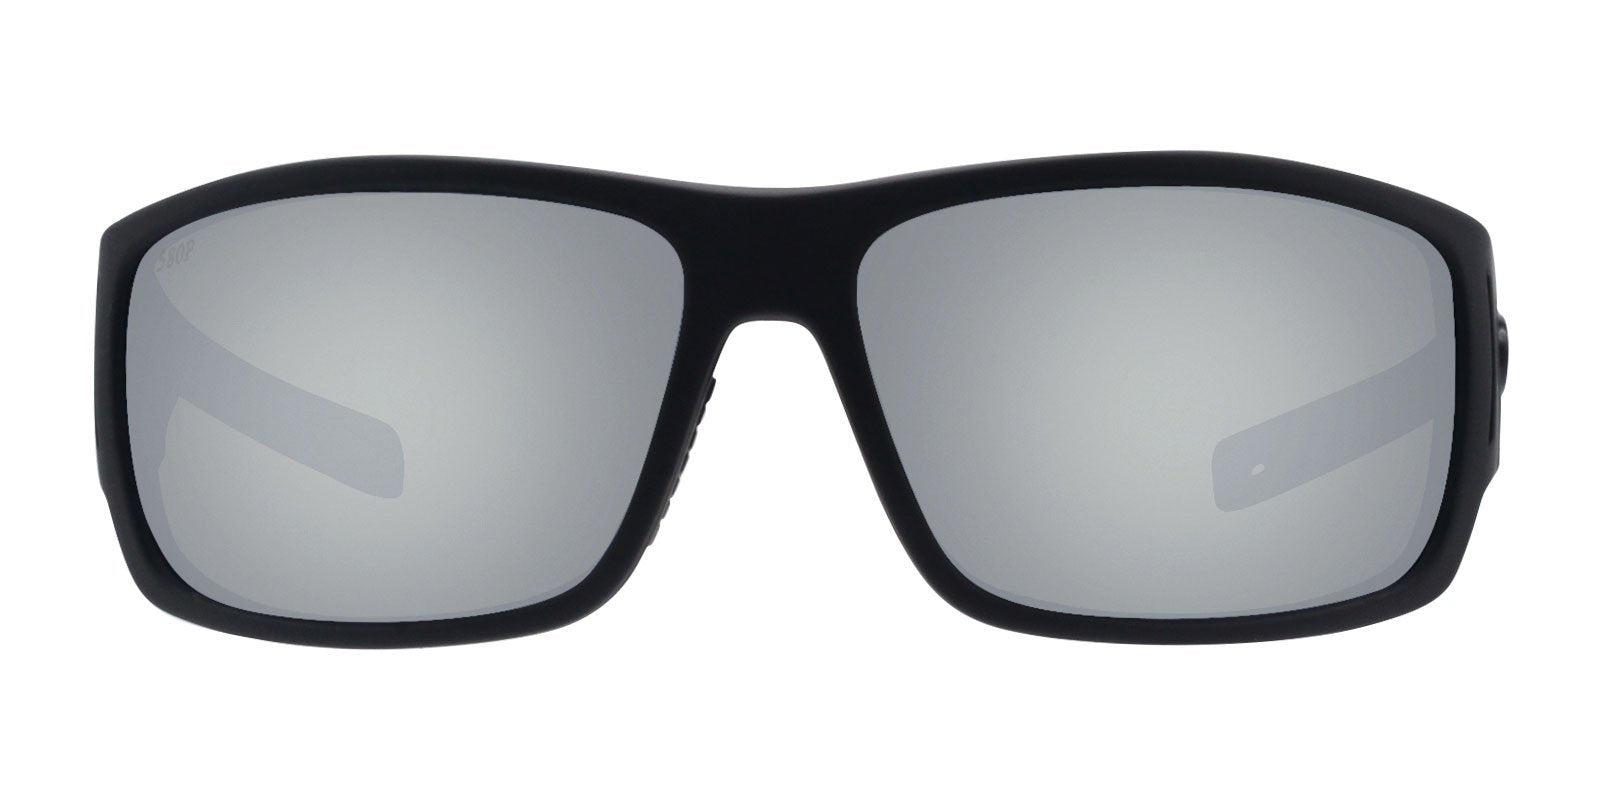 Costa Del Mar - Cape Black/Gray Polarized Rectangular Men Sunglasses-Sunglasses-Designer Eyes